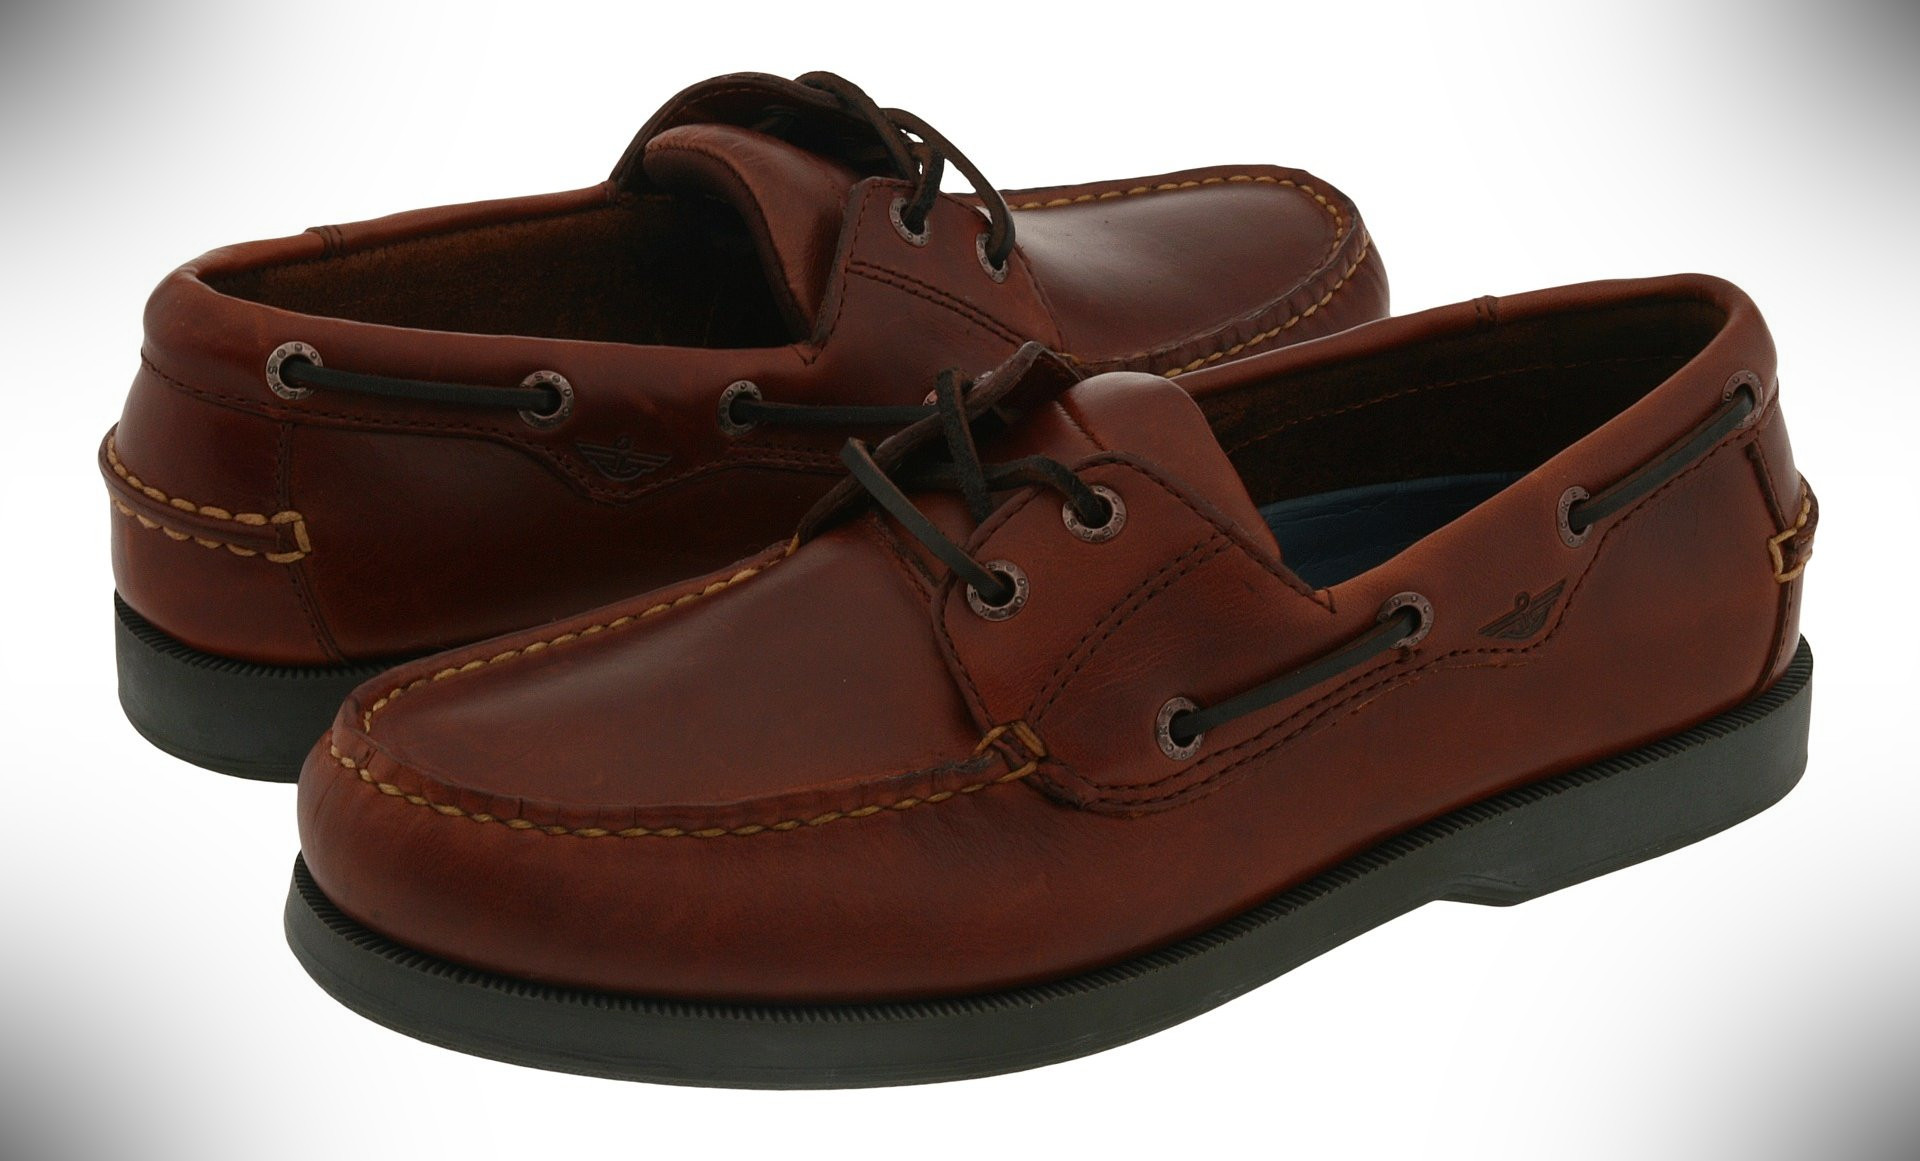 Dockers Castaway – boat shoes that are business casual